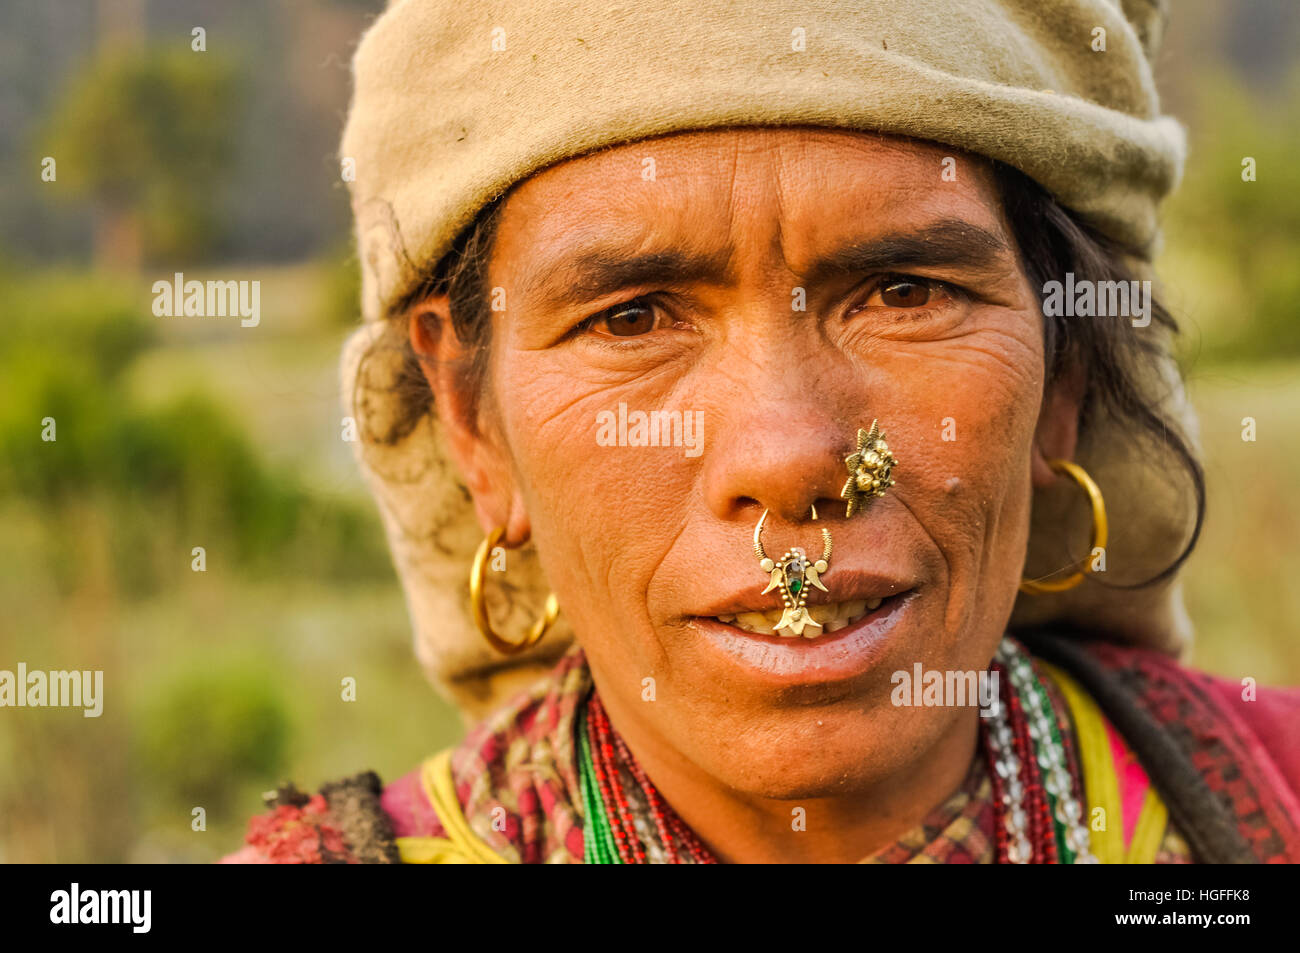 Dolpo, Nepal - circa May 2012: Native woman with brown headcloth has large earrings and piercings in her nose with - Stock Image